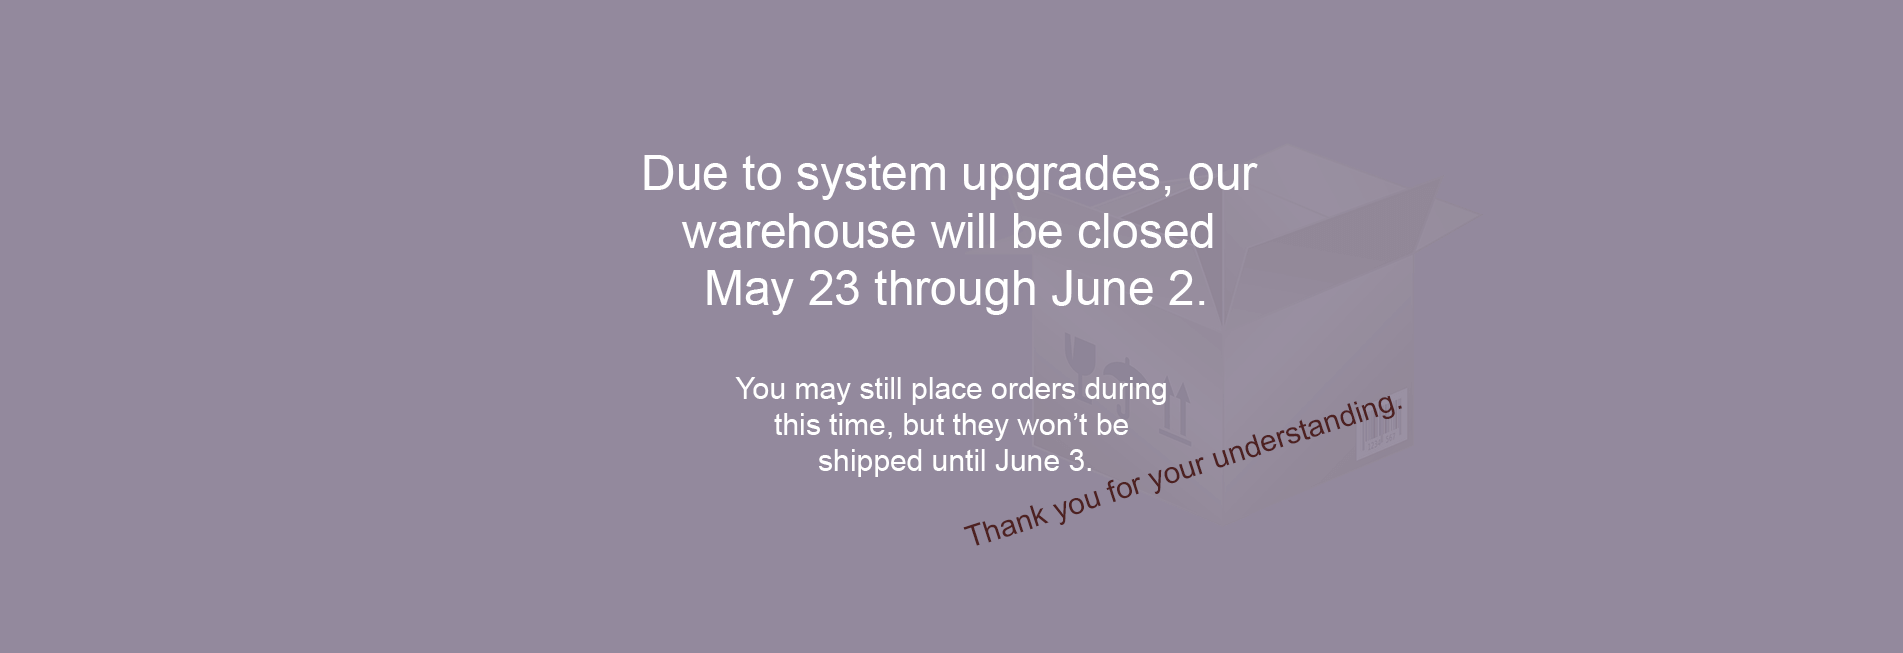 warehouse closed